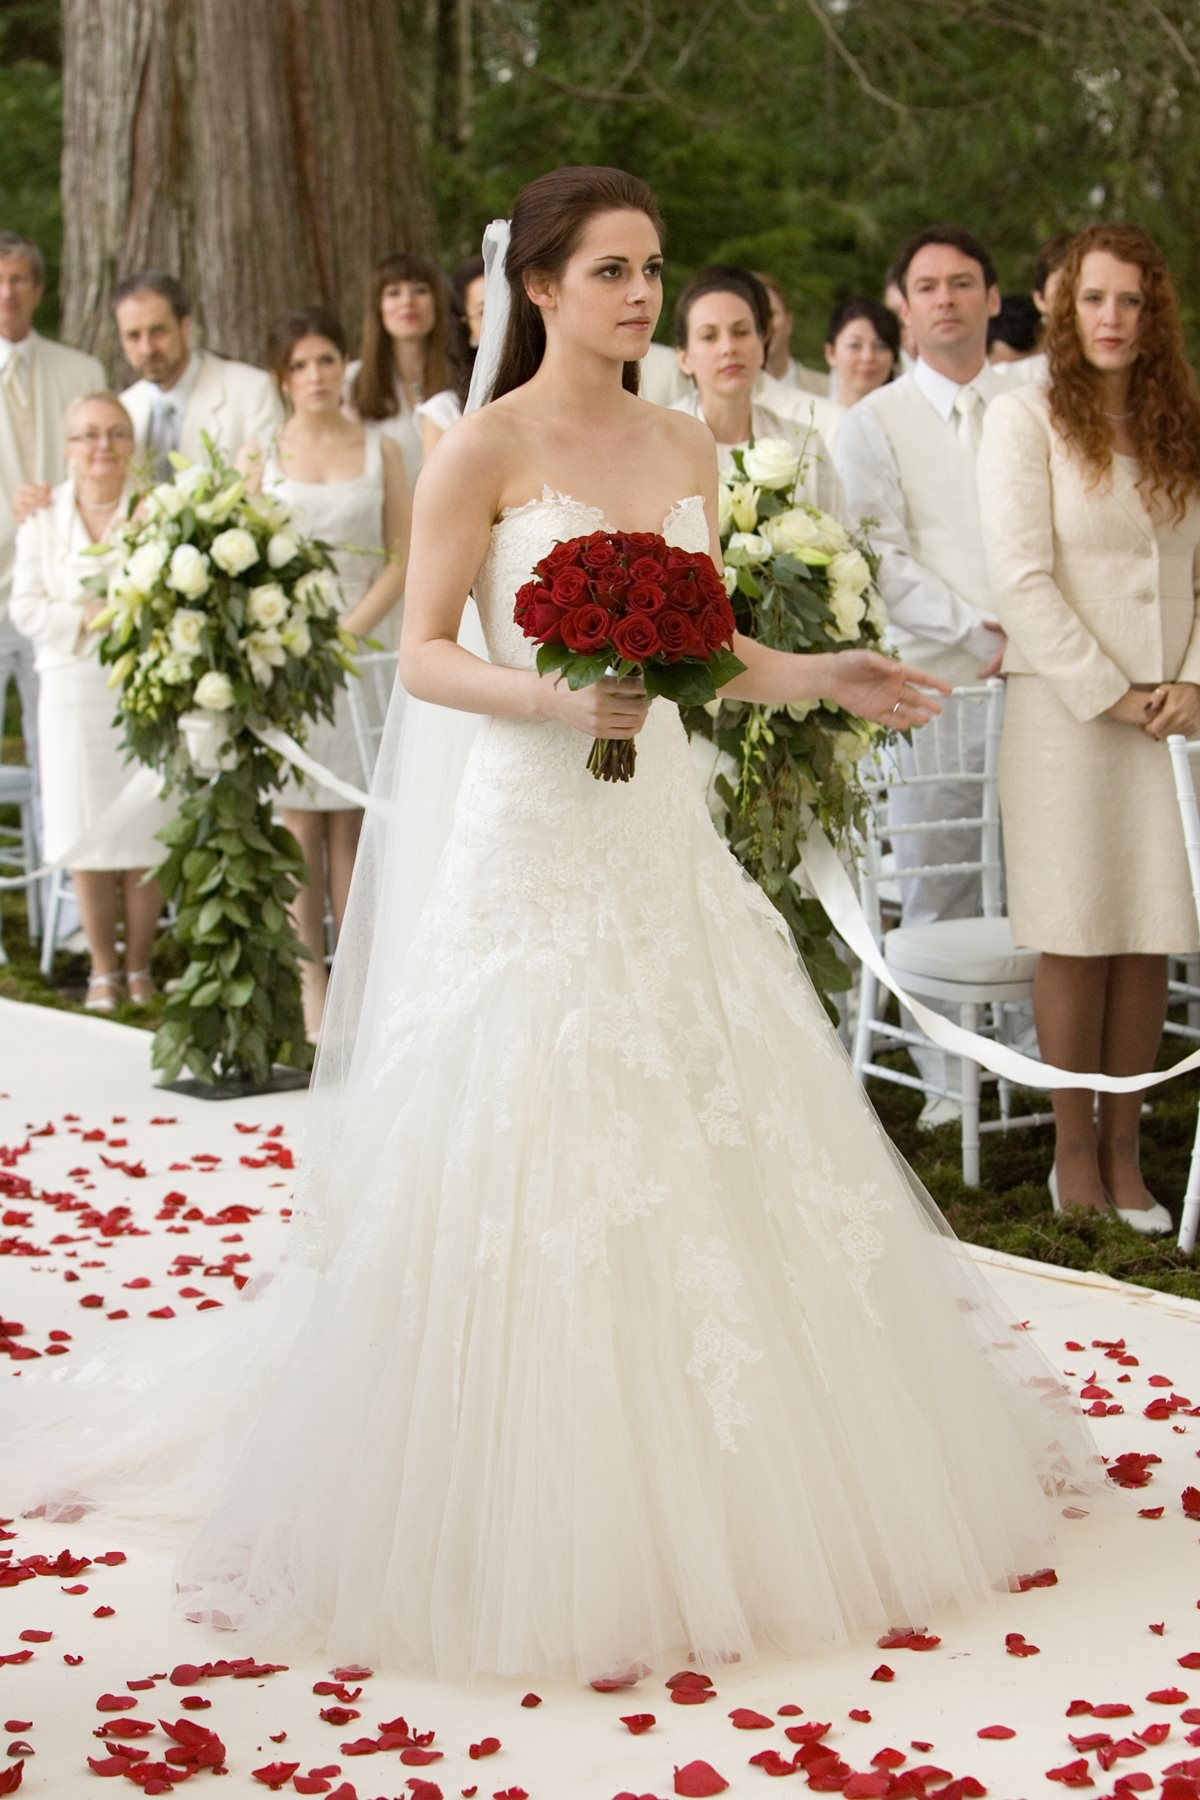 Bella Swan\'s Nightmare Wedding Dress and Veil - Current price: $1400